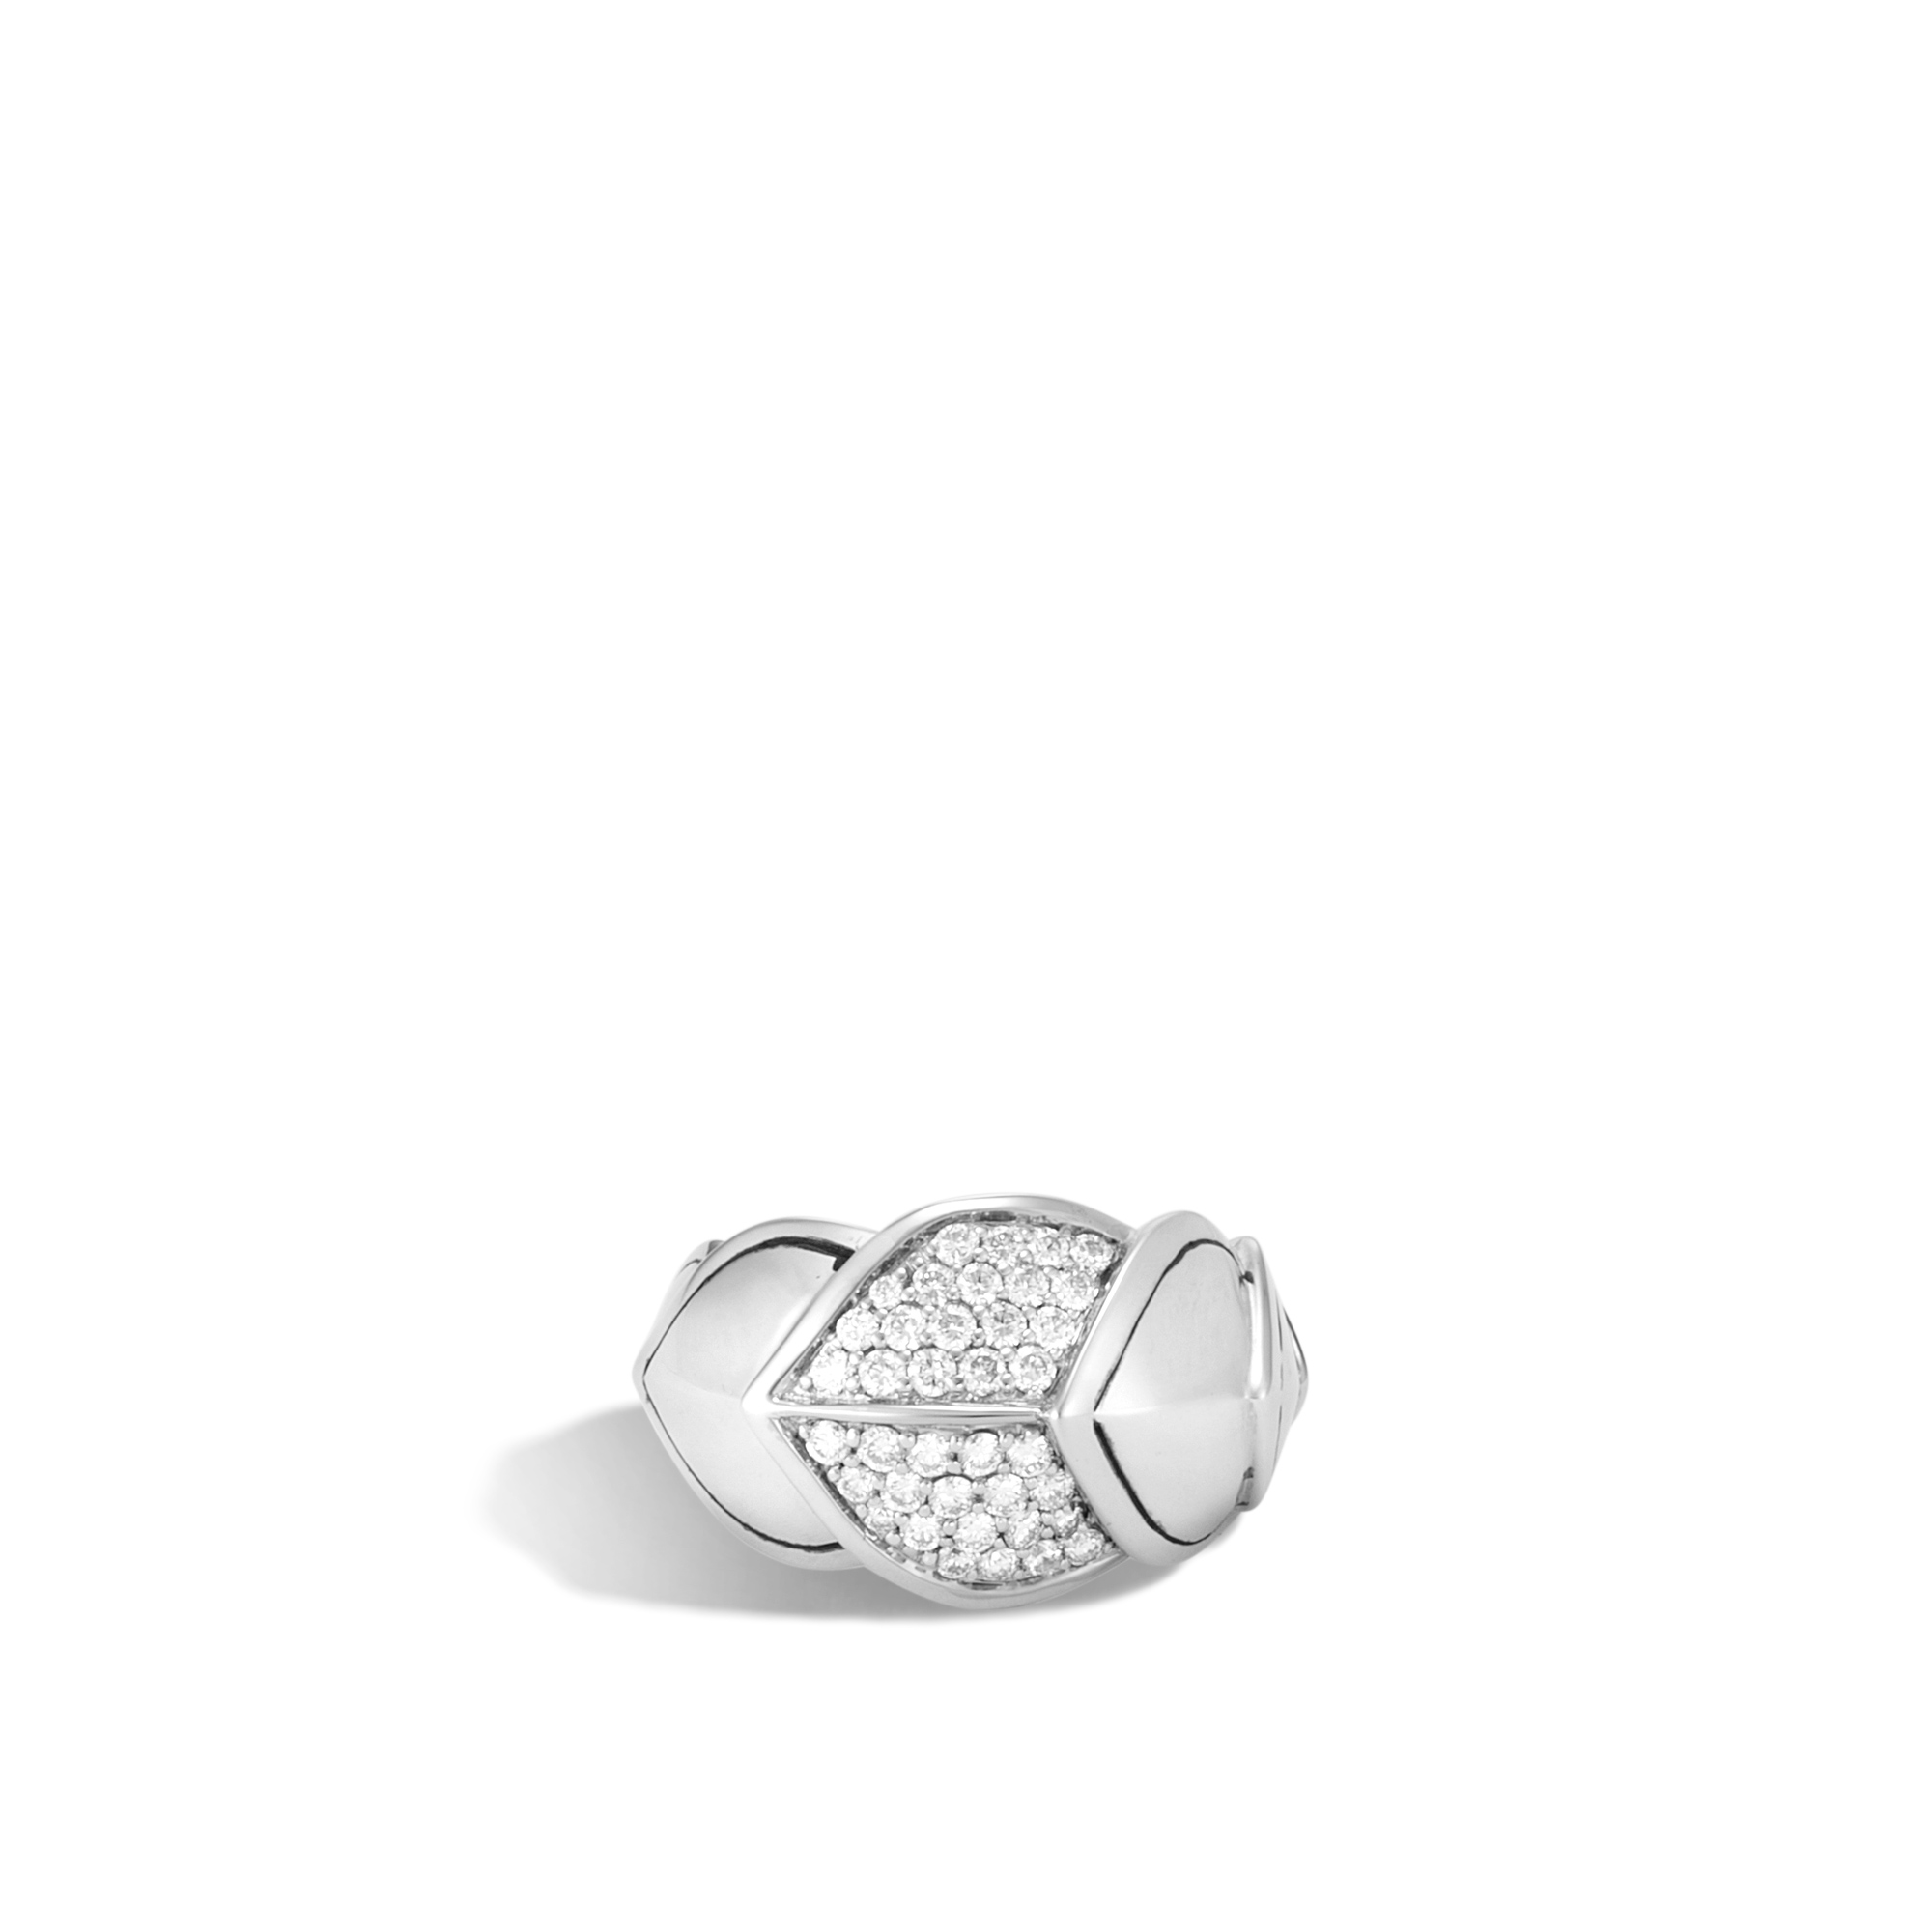 Legends Naga 15MM Ring in Silver with Diamonds, White Diamond, large